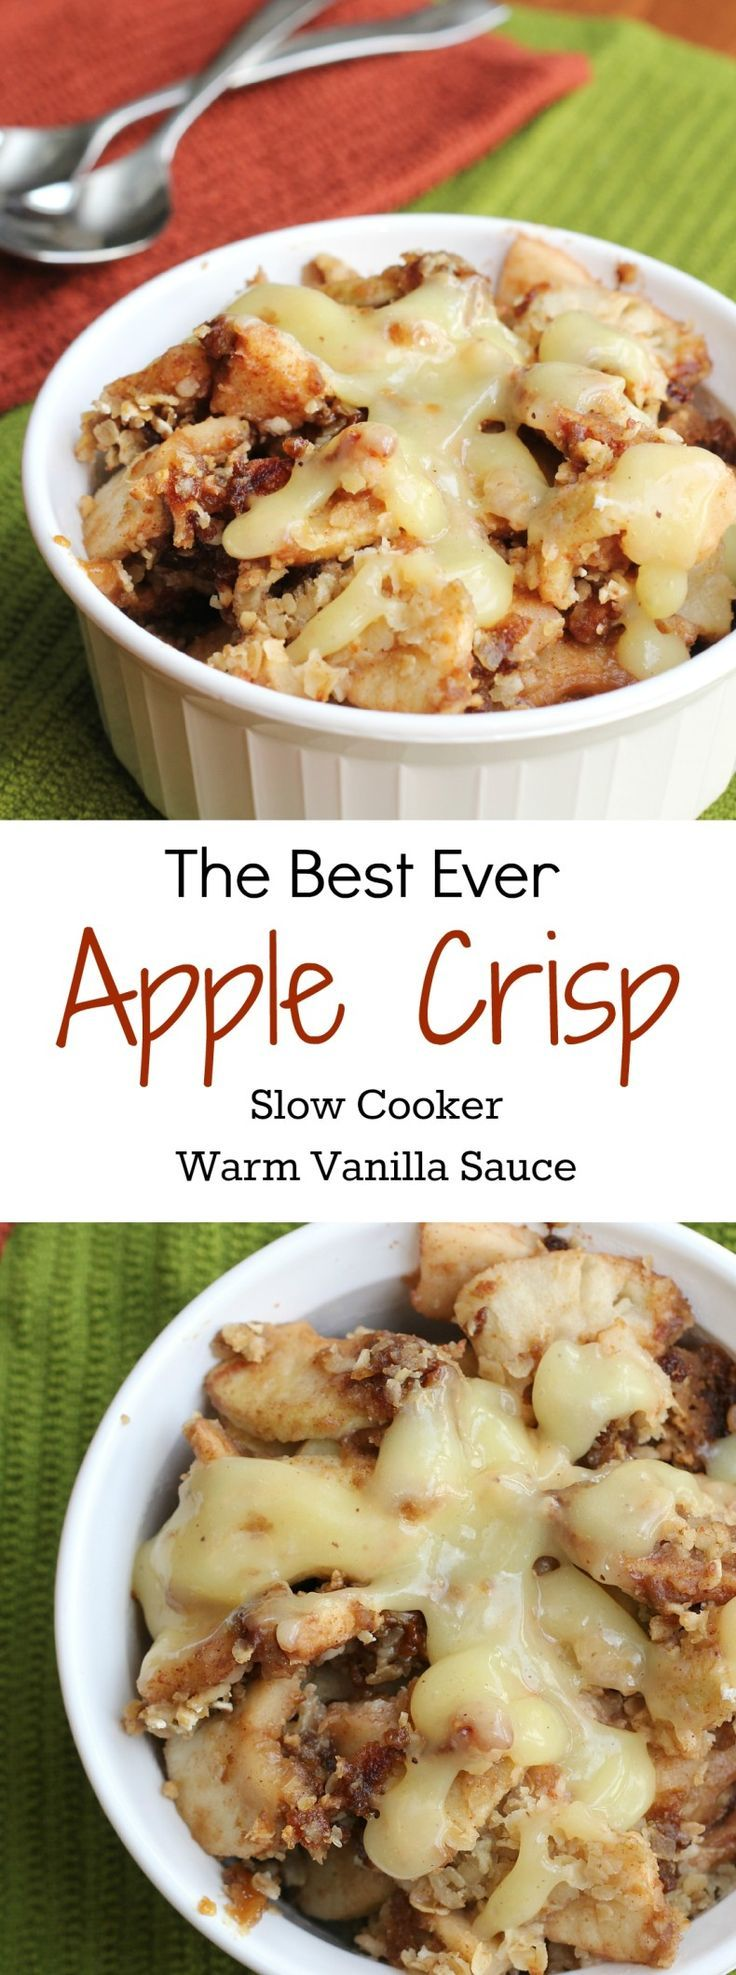 Best ever apple crisp slow cooker - You might have many apple crisp recipes in your collection yet this one for Slow Cooker Apple Crisp with Warm Vanilla Sauce raises the bar!